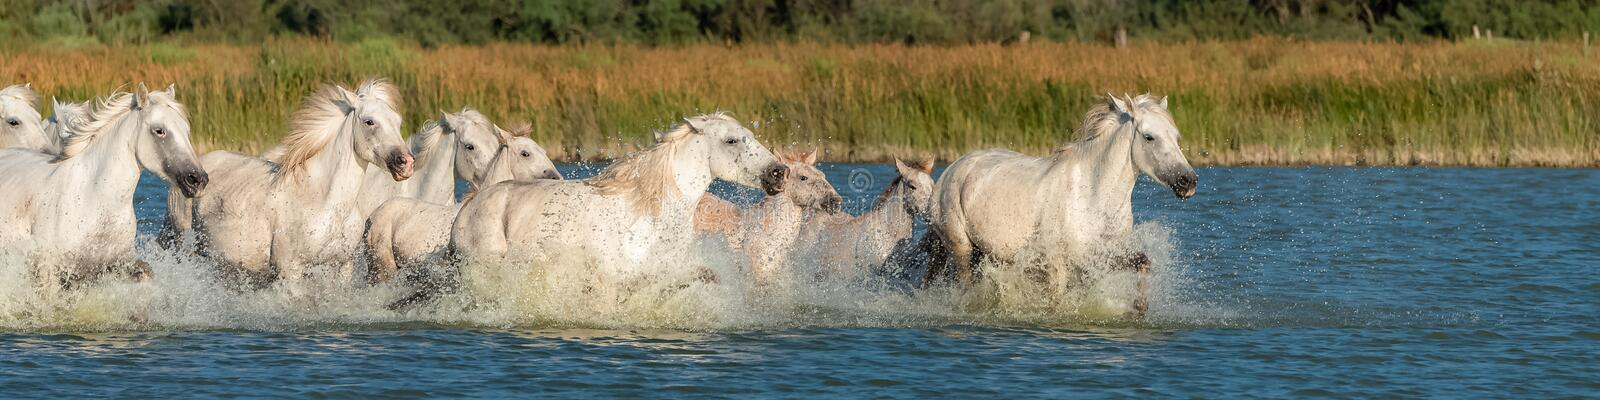 Horses running in the water stock photos